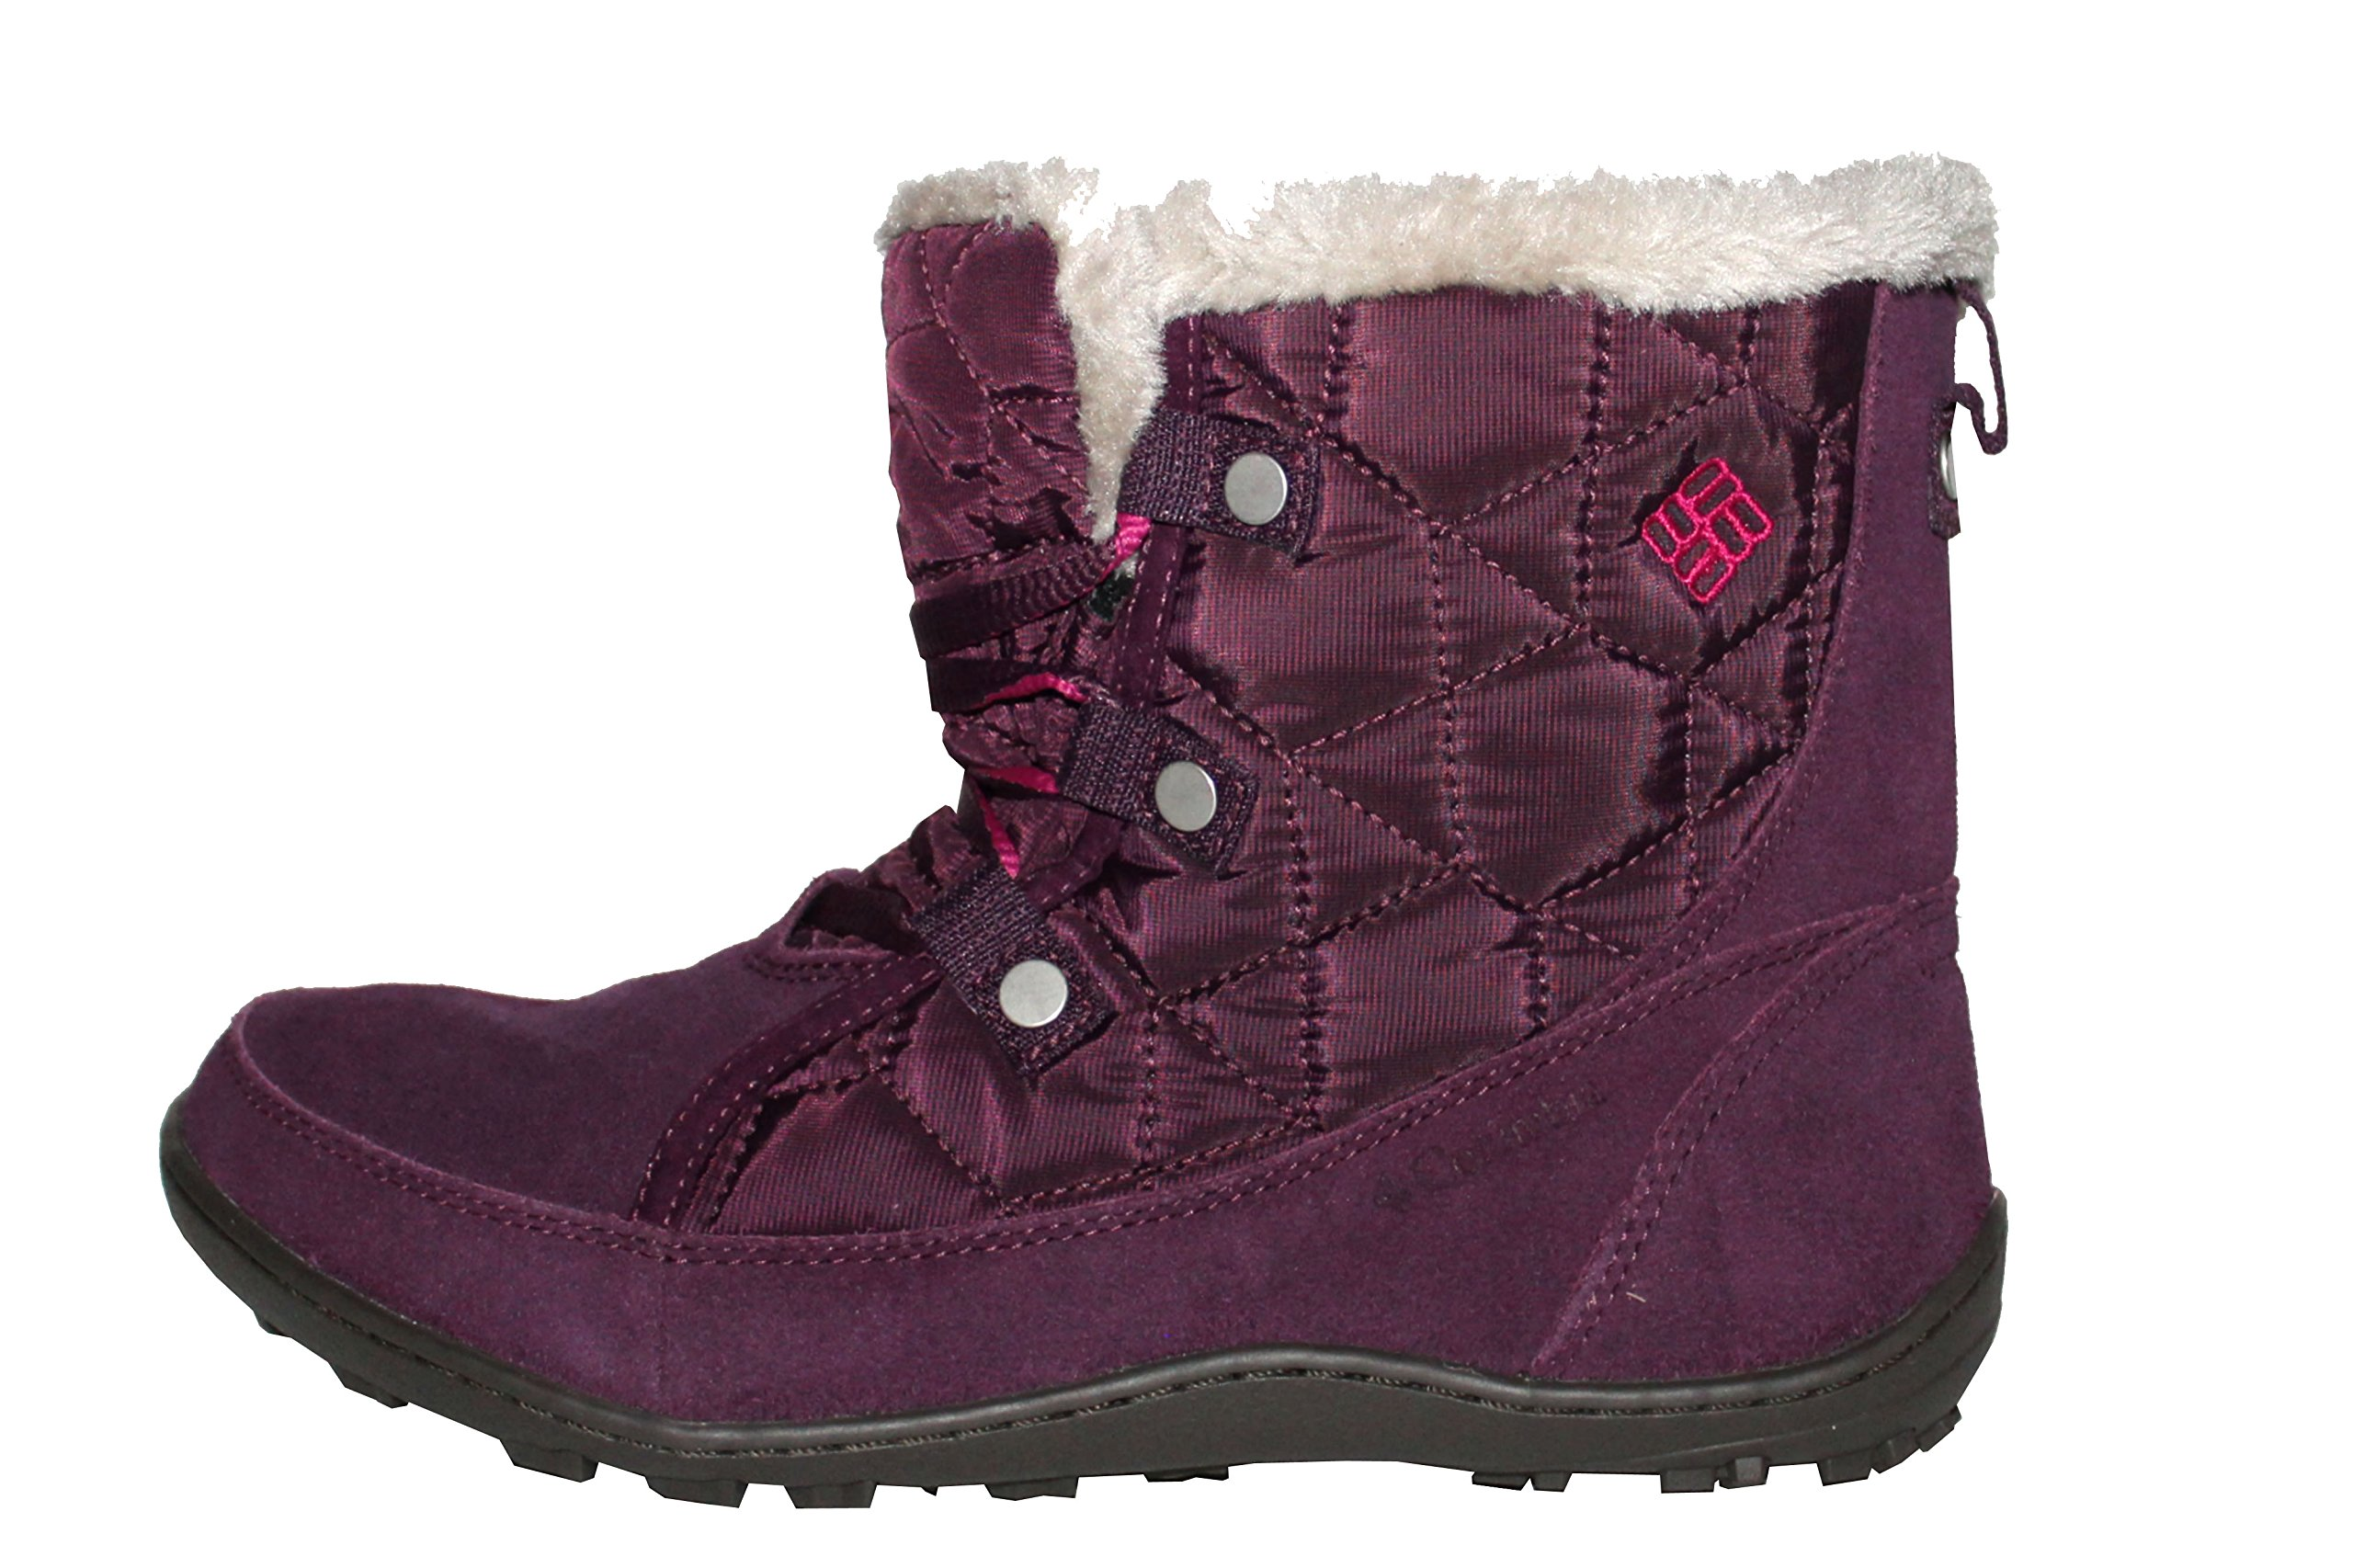 Columbia Women's Powder Summit Shorty Waterproof Boots Insulated Shoes (8) by Columbia